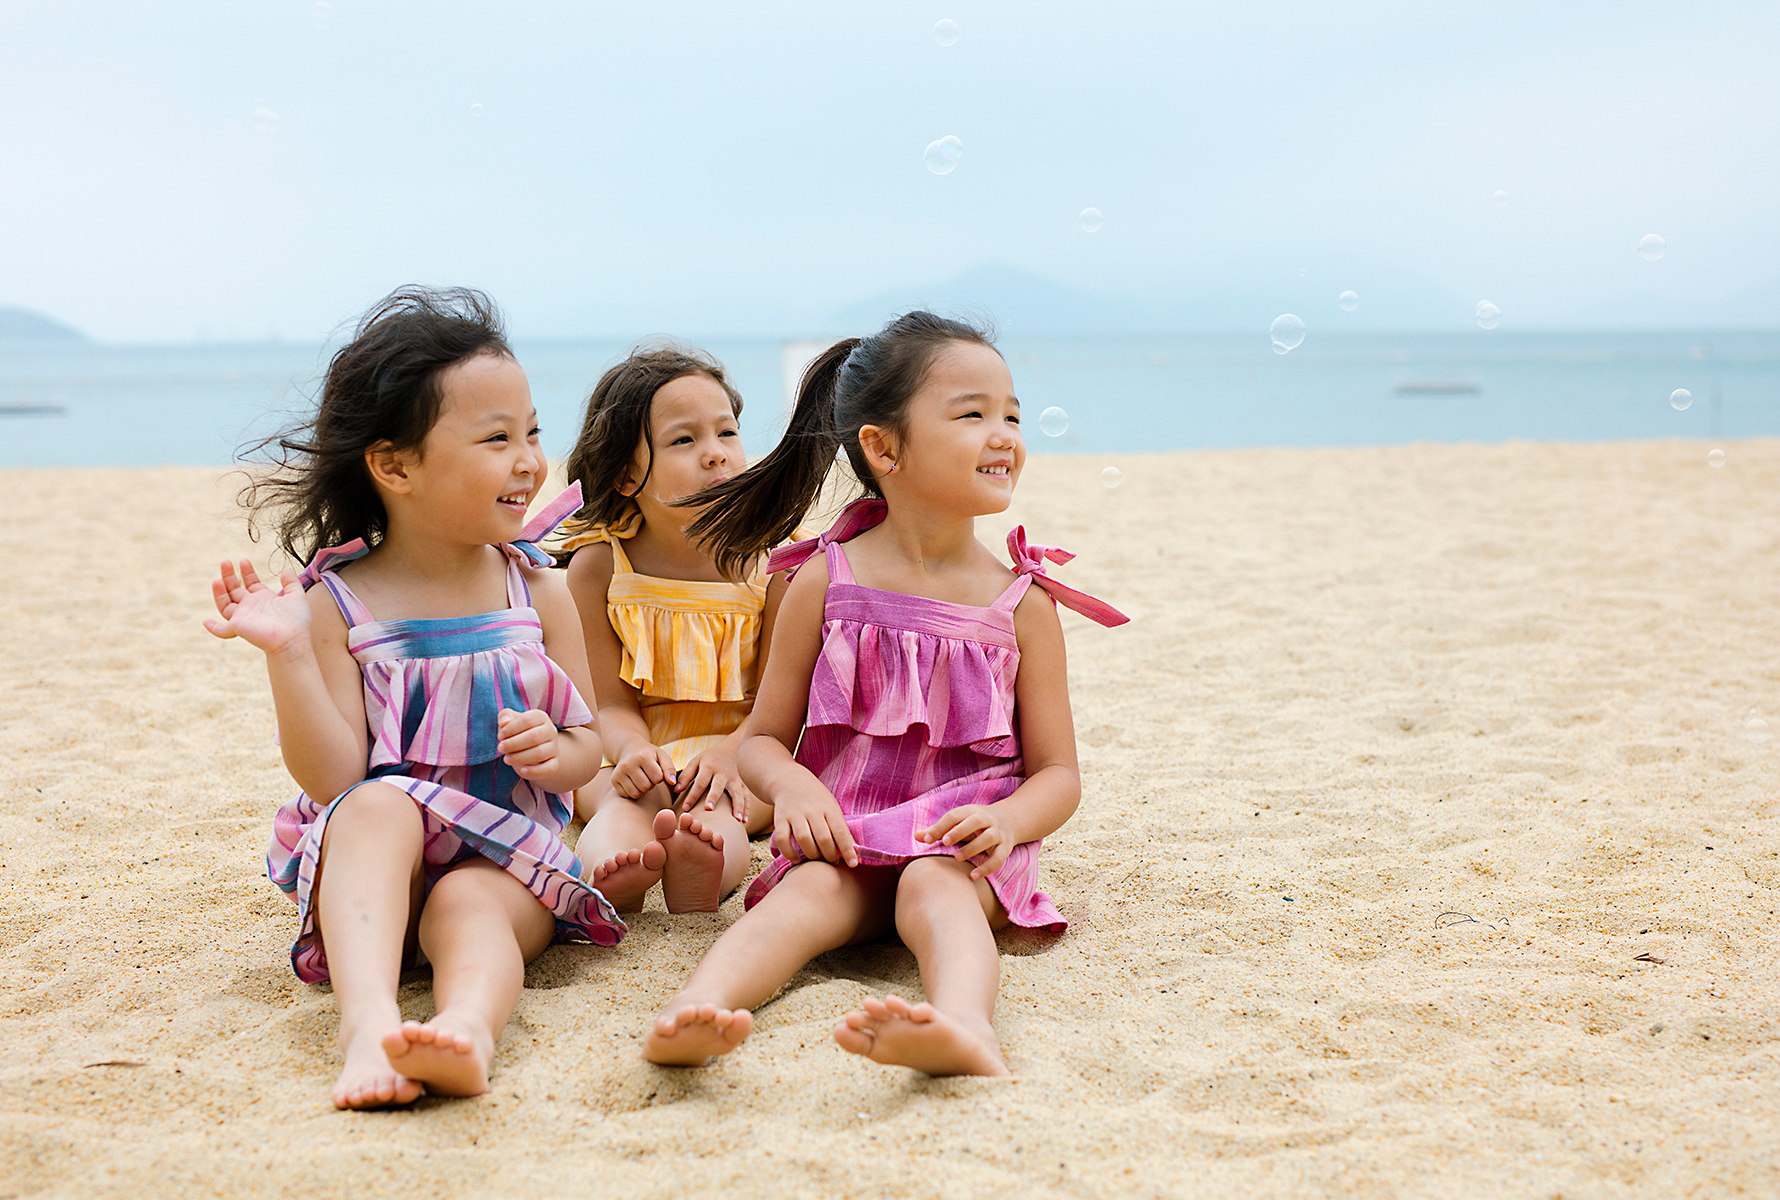 Sustainable & Oh-So-Cute, This Summer, Our Children Will Be Wearing Little Islanders